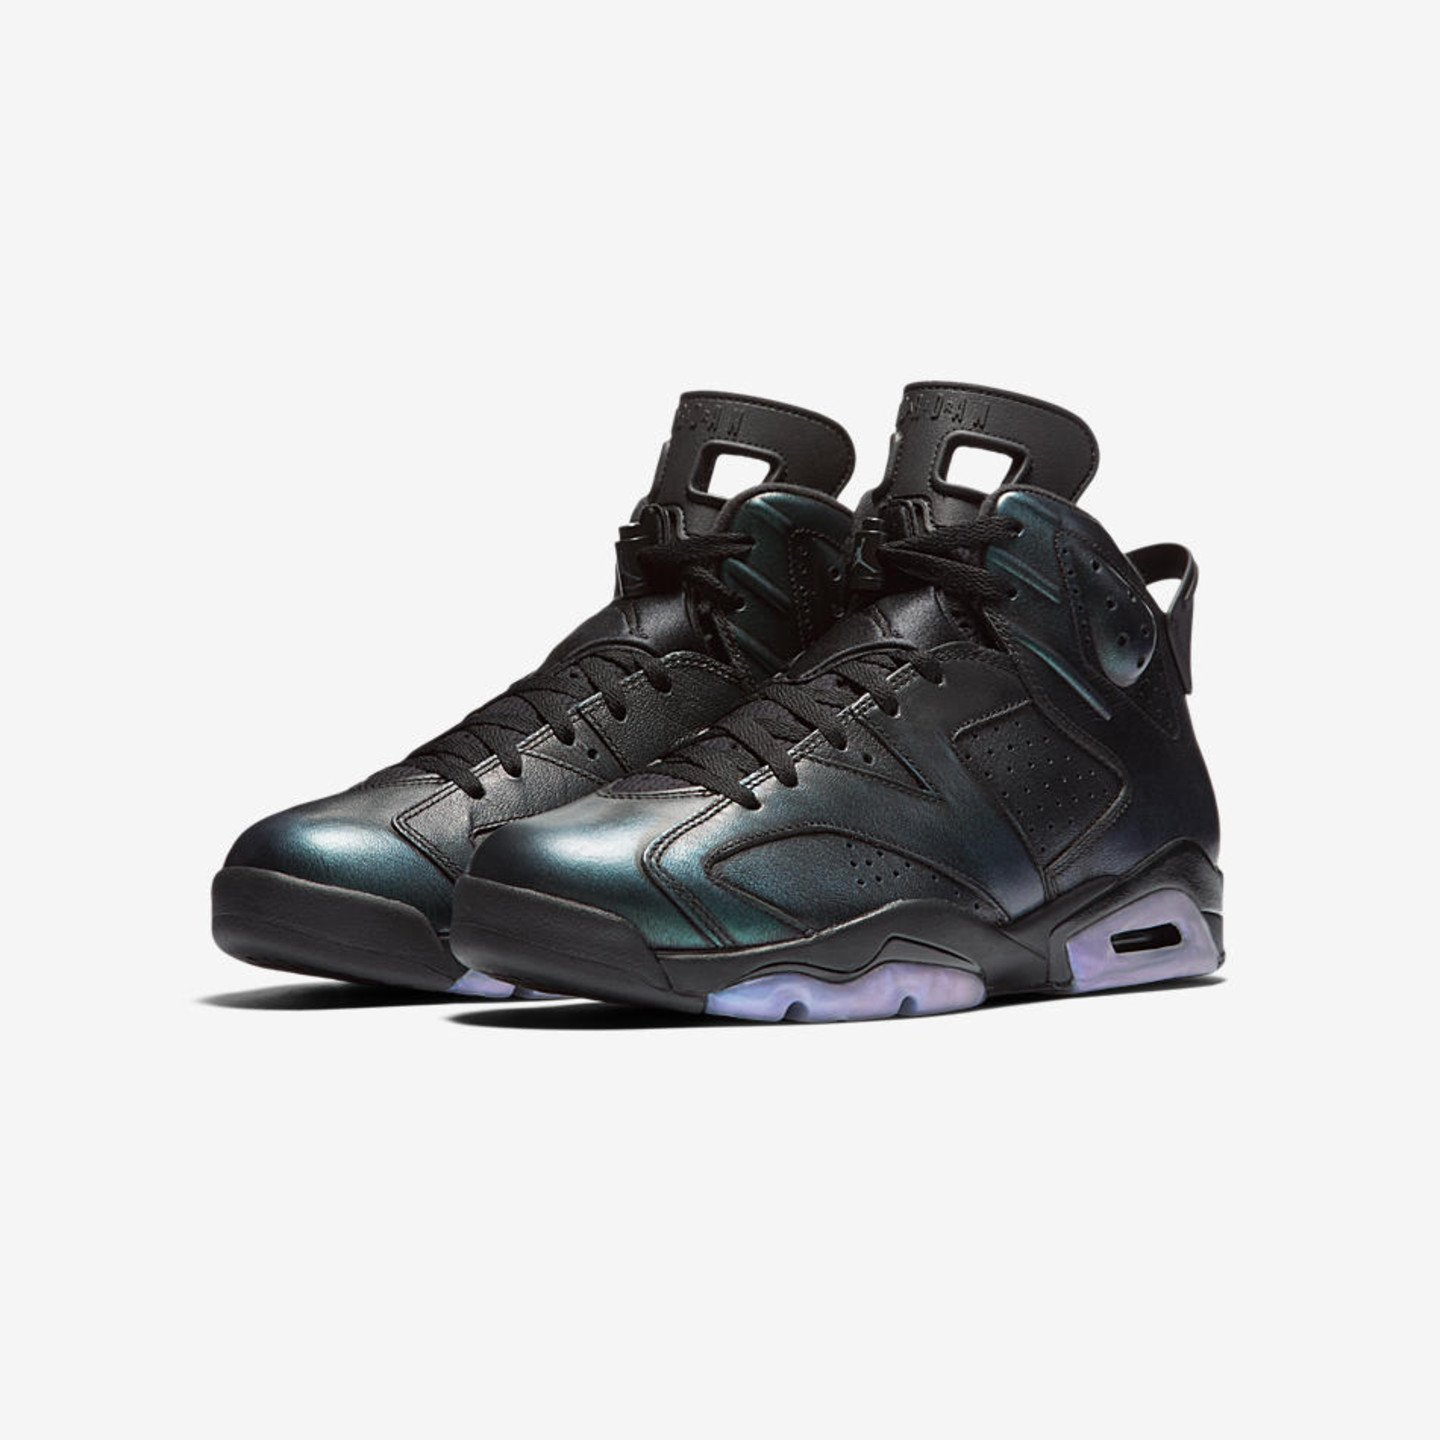 Jordan Air Jordan 6 Retro GS 'All Star' Black / Iridescent 907960-015-36